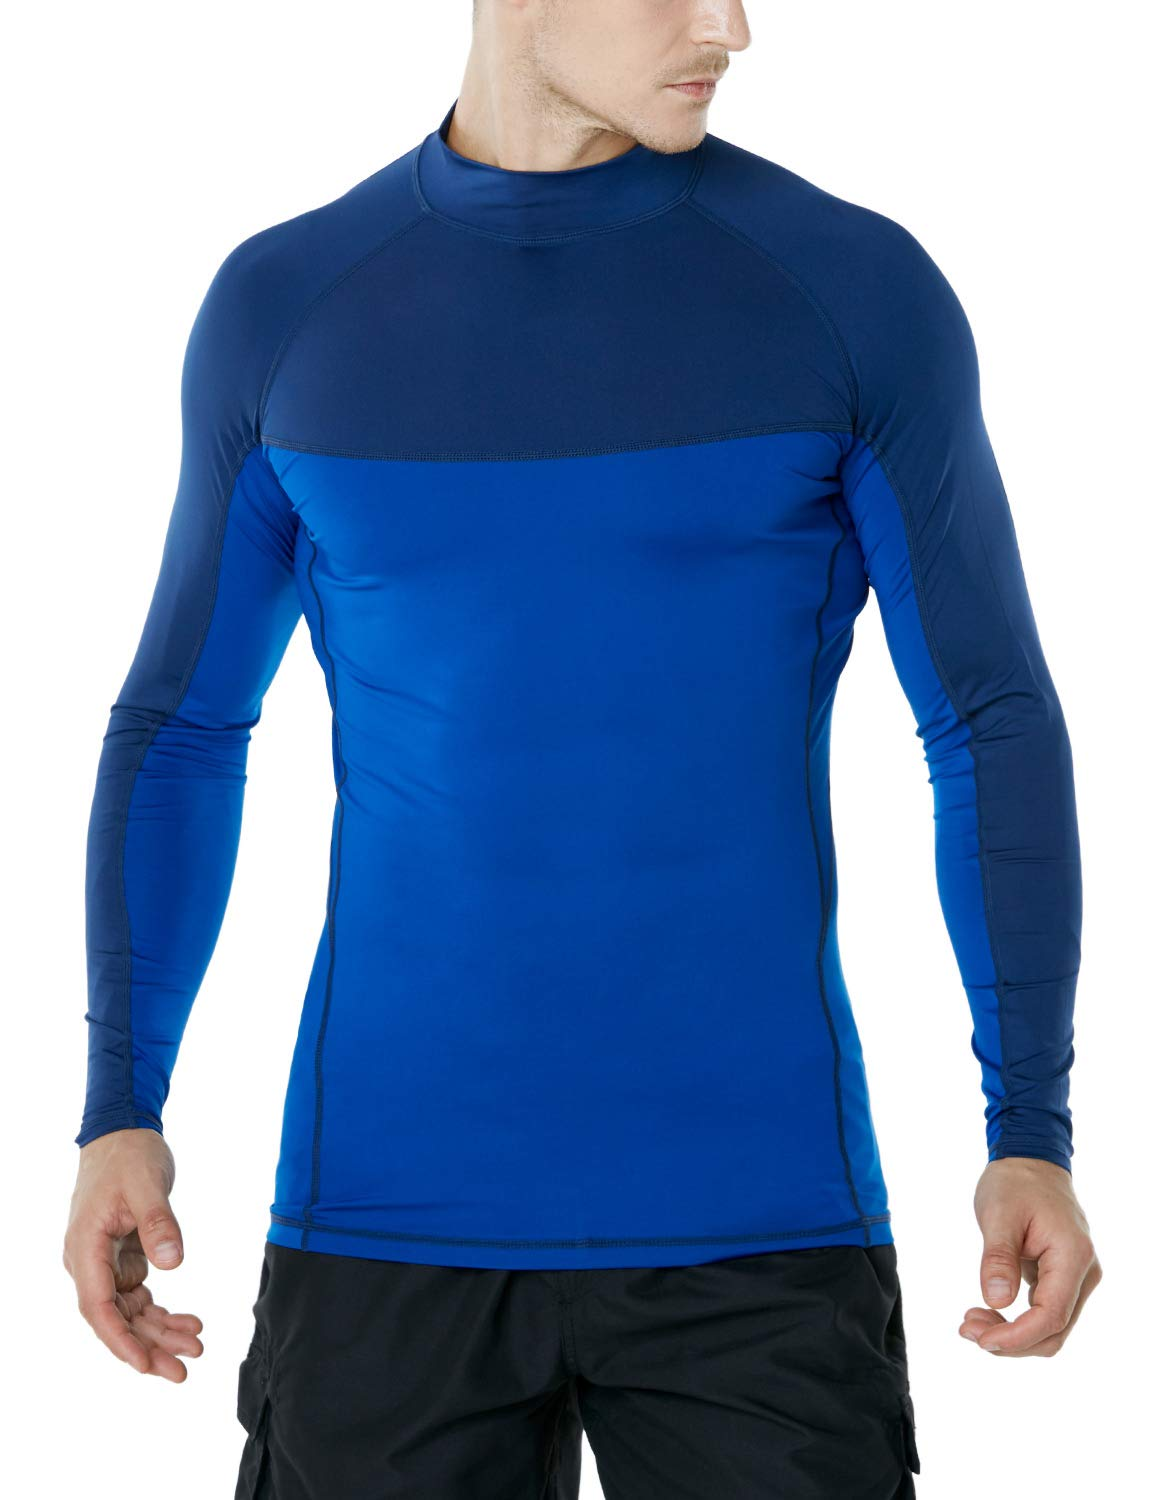 TSLA Mens UPF 50 Long Sleeve Rashguard